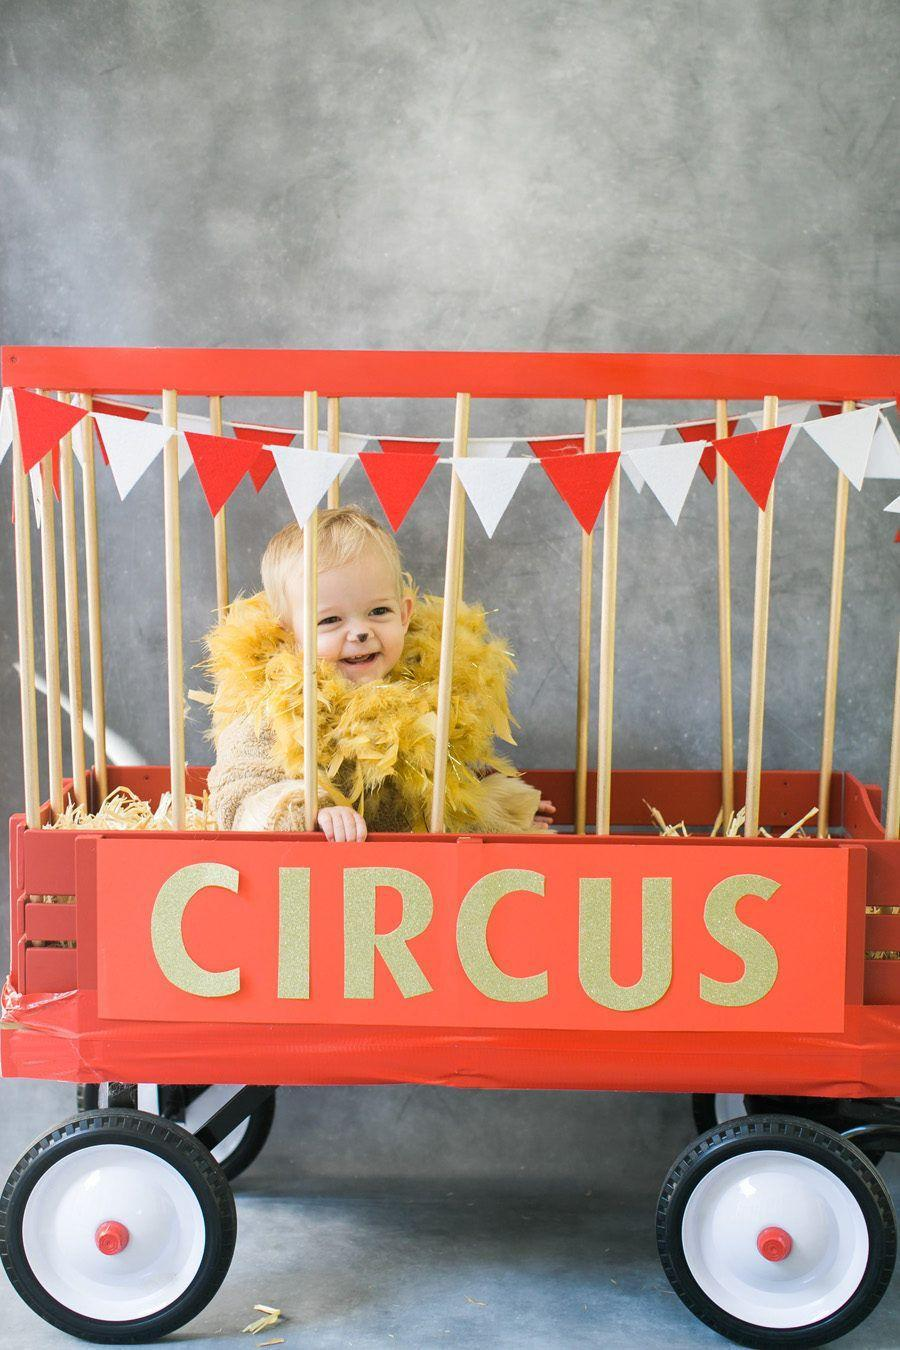 """<p>Your fierce little lion will feel warm and cozy in a furry snowsuit and feather boa mane. Put him inside his very own circus wagon for easy transport while trick-or-treating. </p><p><strong>See more at <a href=""""https://www.stylemepretty.com/living/2015/10/07/diy-halloween-costume-circus-lion/"""" rel=""""nofollow noopener"""" target=""""_blank"""" data-ylk=""""slk:Style Me Pretty"""" class=""""link rapid-noclick-resp"""">Style Me Pretty</a>. </strong></p><p><a class=""""link rapid-noclick-resp"""" href=""""https://www.amazon.com/Amscan-Costume-Party-Feather-Accessory/dp/B01BHFWORS?tag=syn-yahoo-20&ascsubtag=%5Bartid%7C10050.g.29402076%5Bsrc%7Cyahoo-us"""" rel=""""nofollow noopener"""" target=""""_blank"""" data-ylk=""""slk:SHOP GOLD FEATHER BOAS"""">SHOP GOLD FEATHER BOAS</a></p>"""